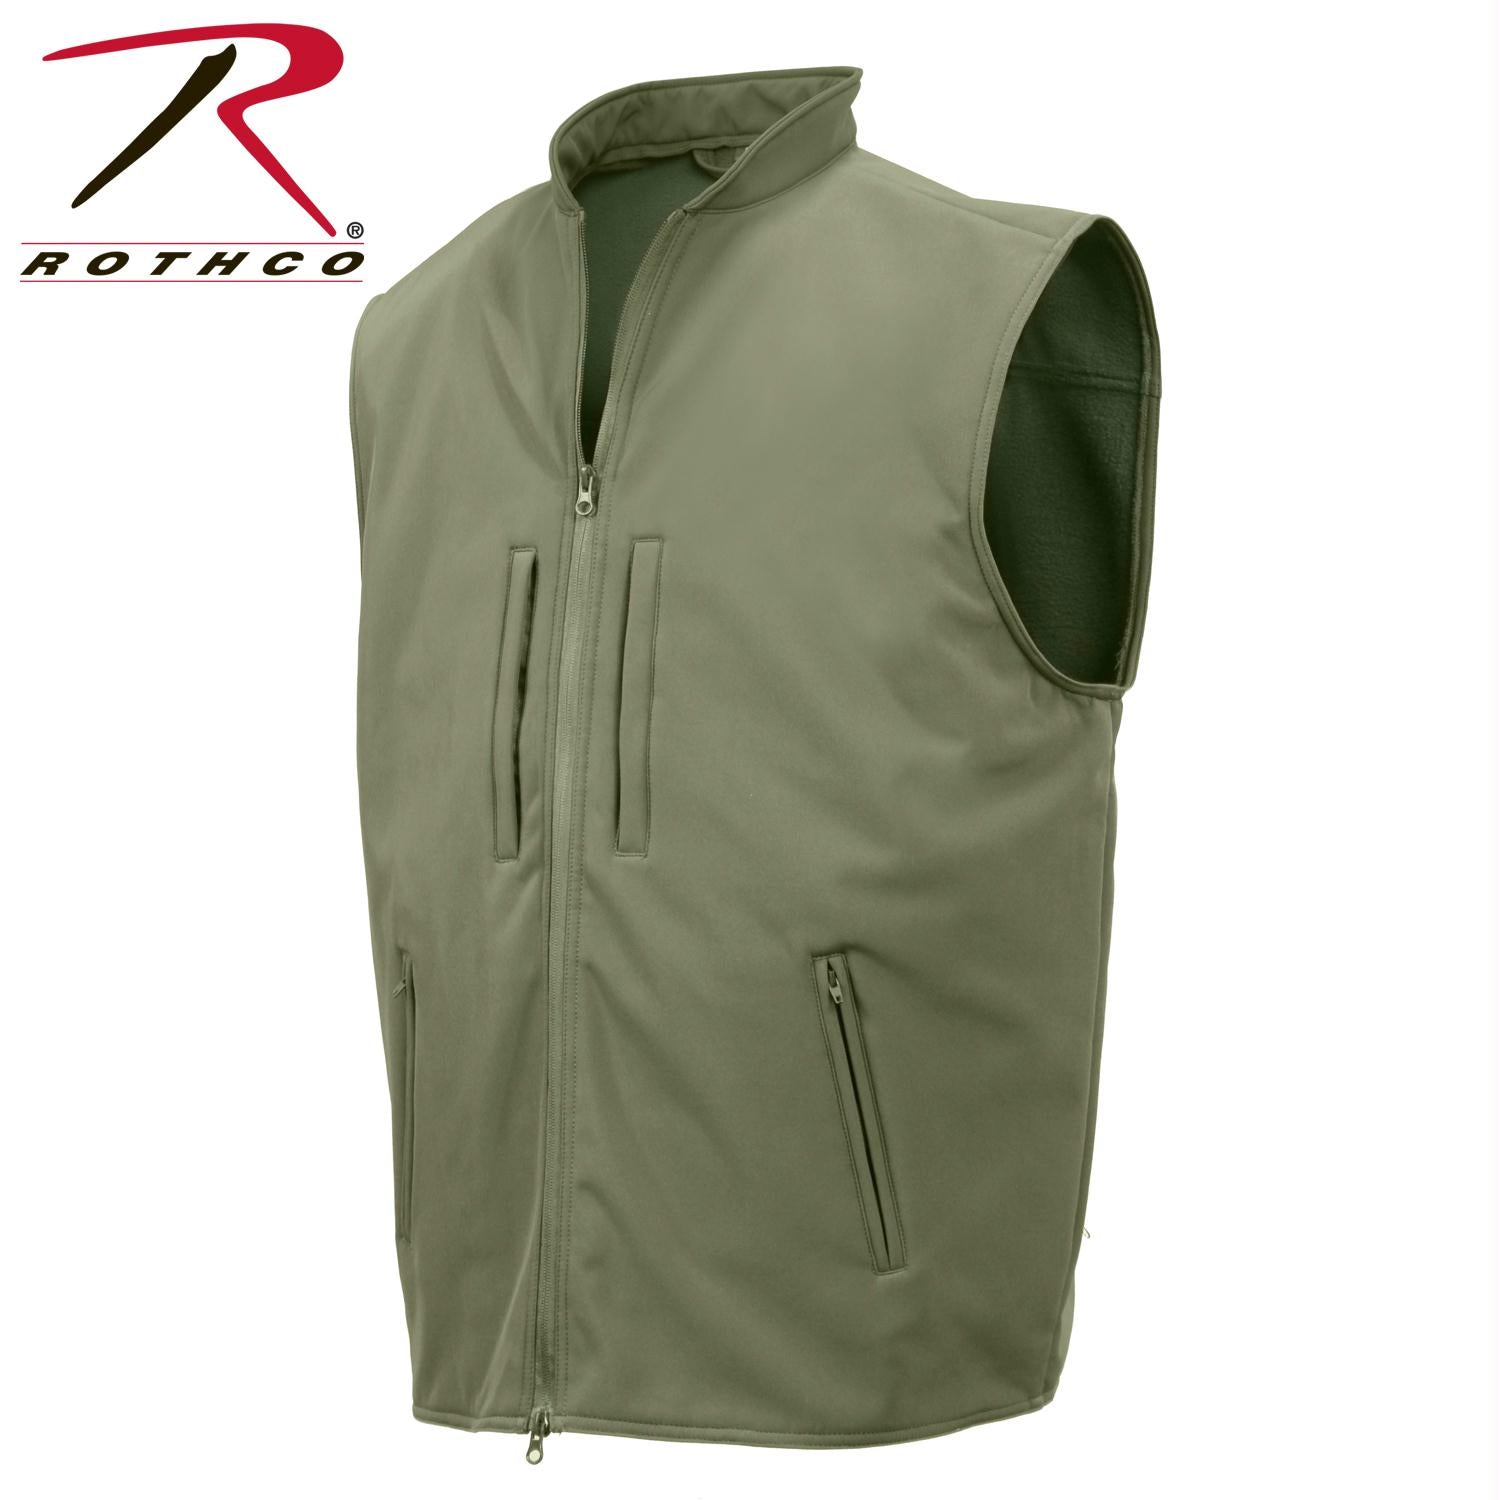 Rothco Concealed Carry Soft Shell Vest - Olive Drab / XL